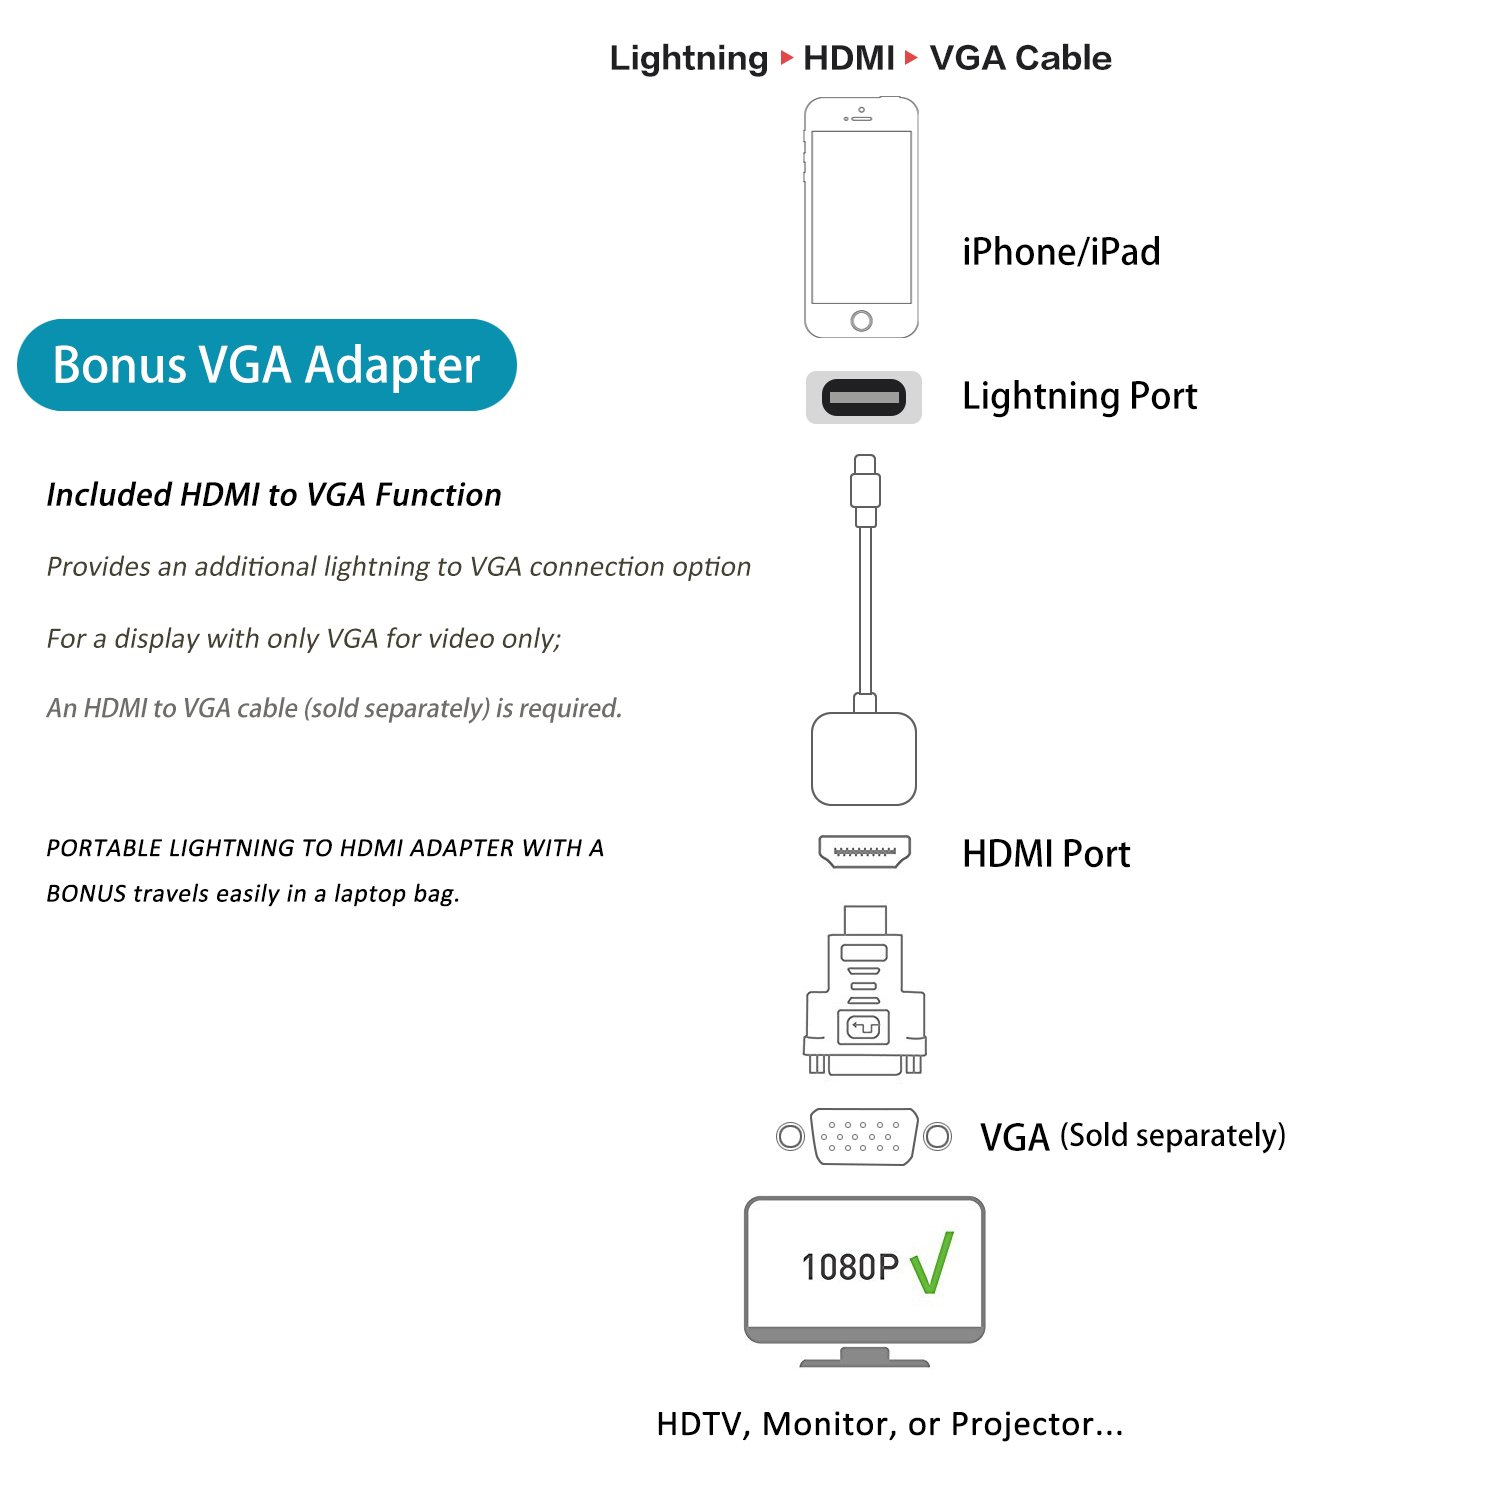 Amazon.com: Lightning to HDMI, Lightning Cable, Lightning Digital ...